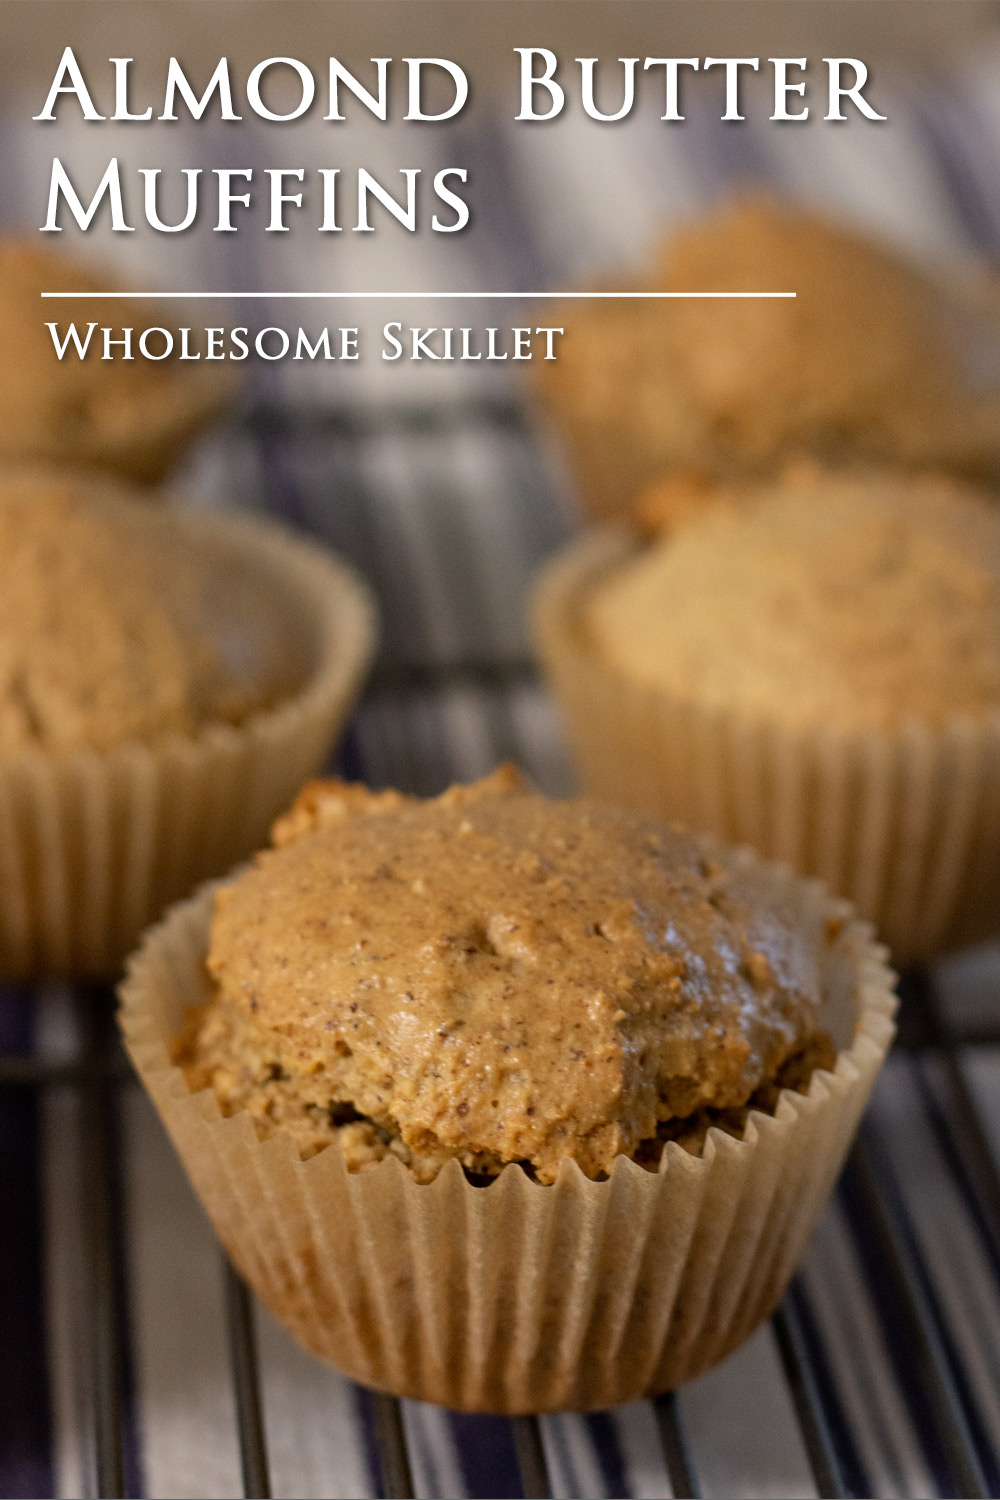 Almond Butter Muffins | Wholesome Skillet